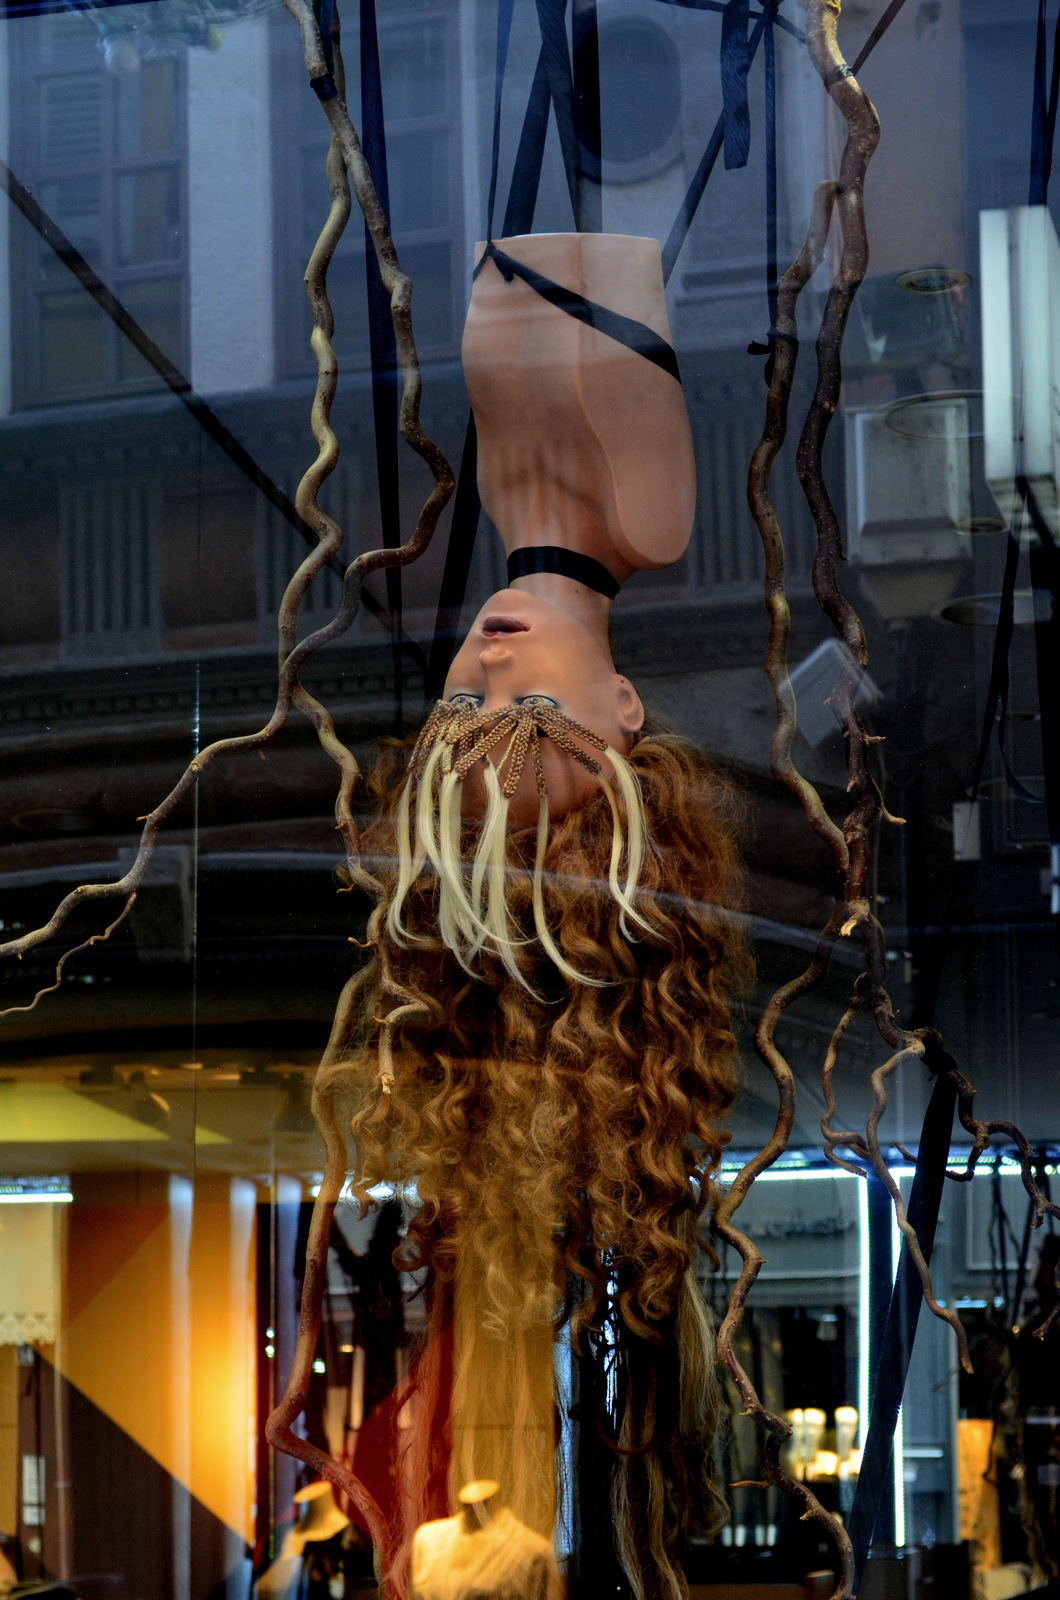 Bizarre/artsy window display at a hairdresser